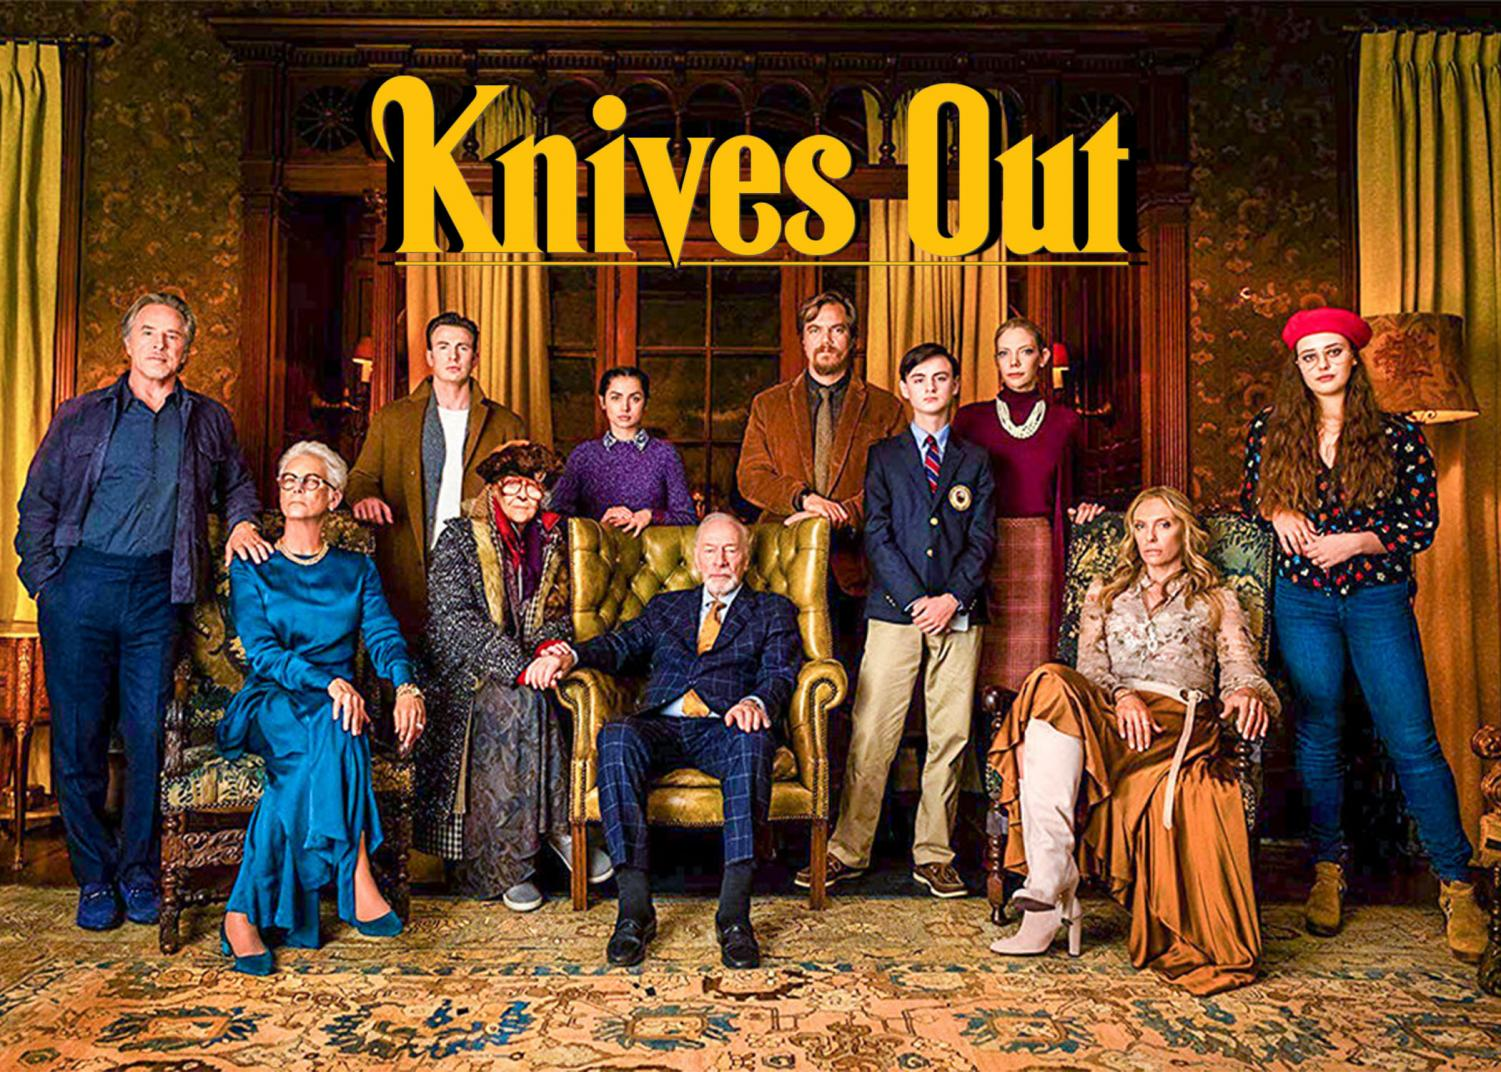 The critically acclaimed murder mystery movie, Knives out, pulled in $41.7 million in its initial early five-day thanksgiving release on Wednesday 27th. Apart from a star-studded cast, the movie also gained attention for its controversial director Rian Johnson. The movie exceeded its already high expectations with its great story and amazing production.